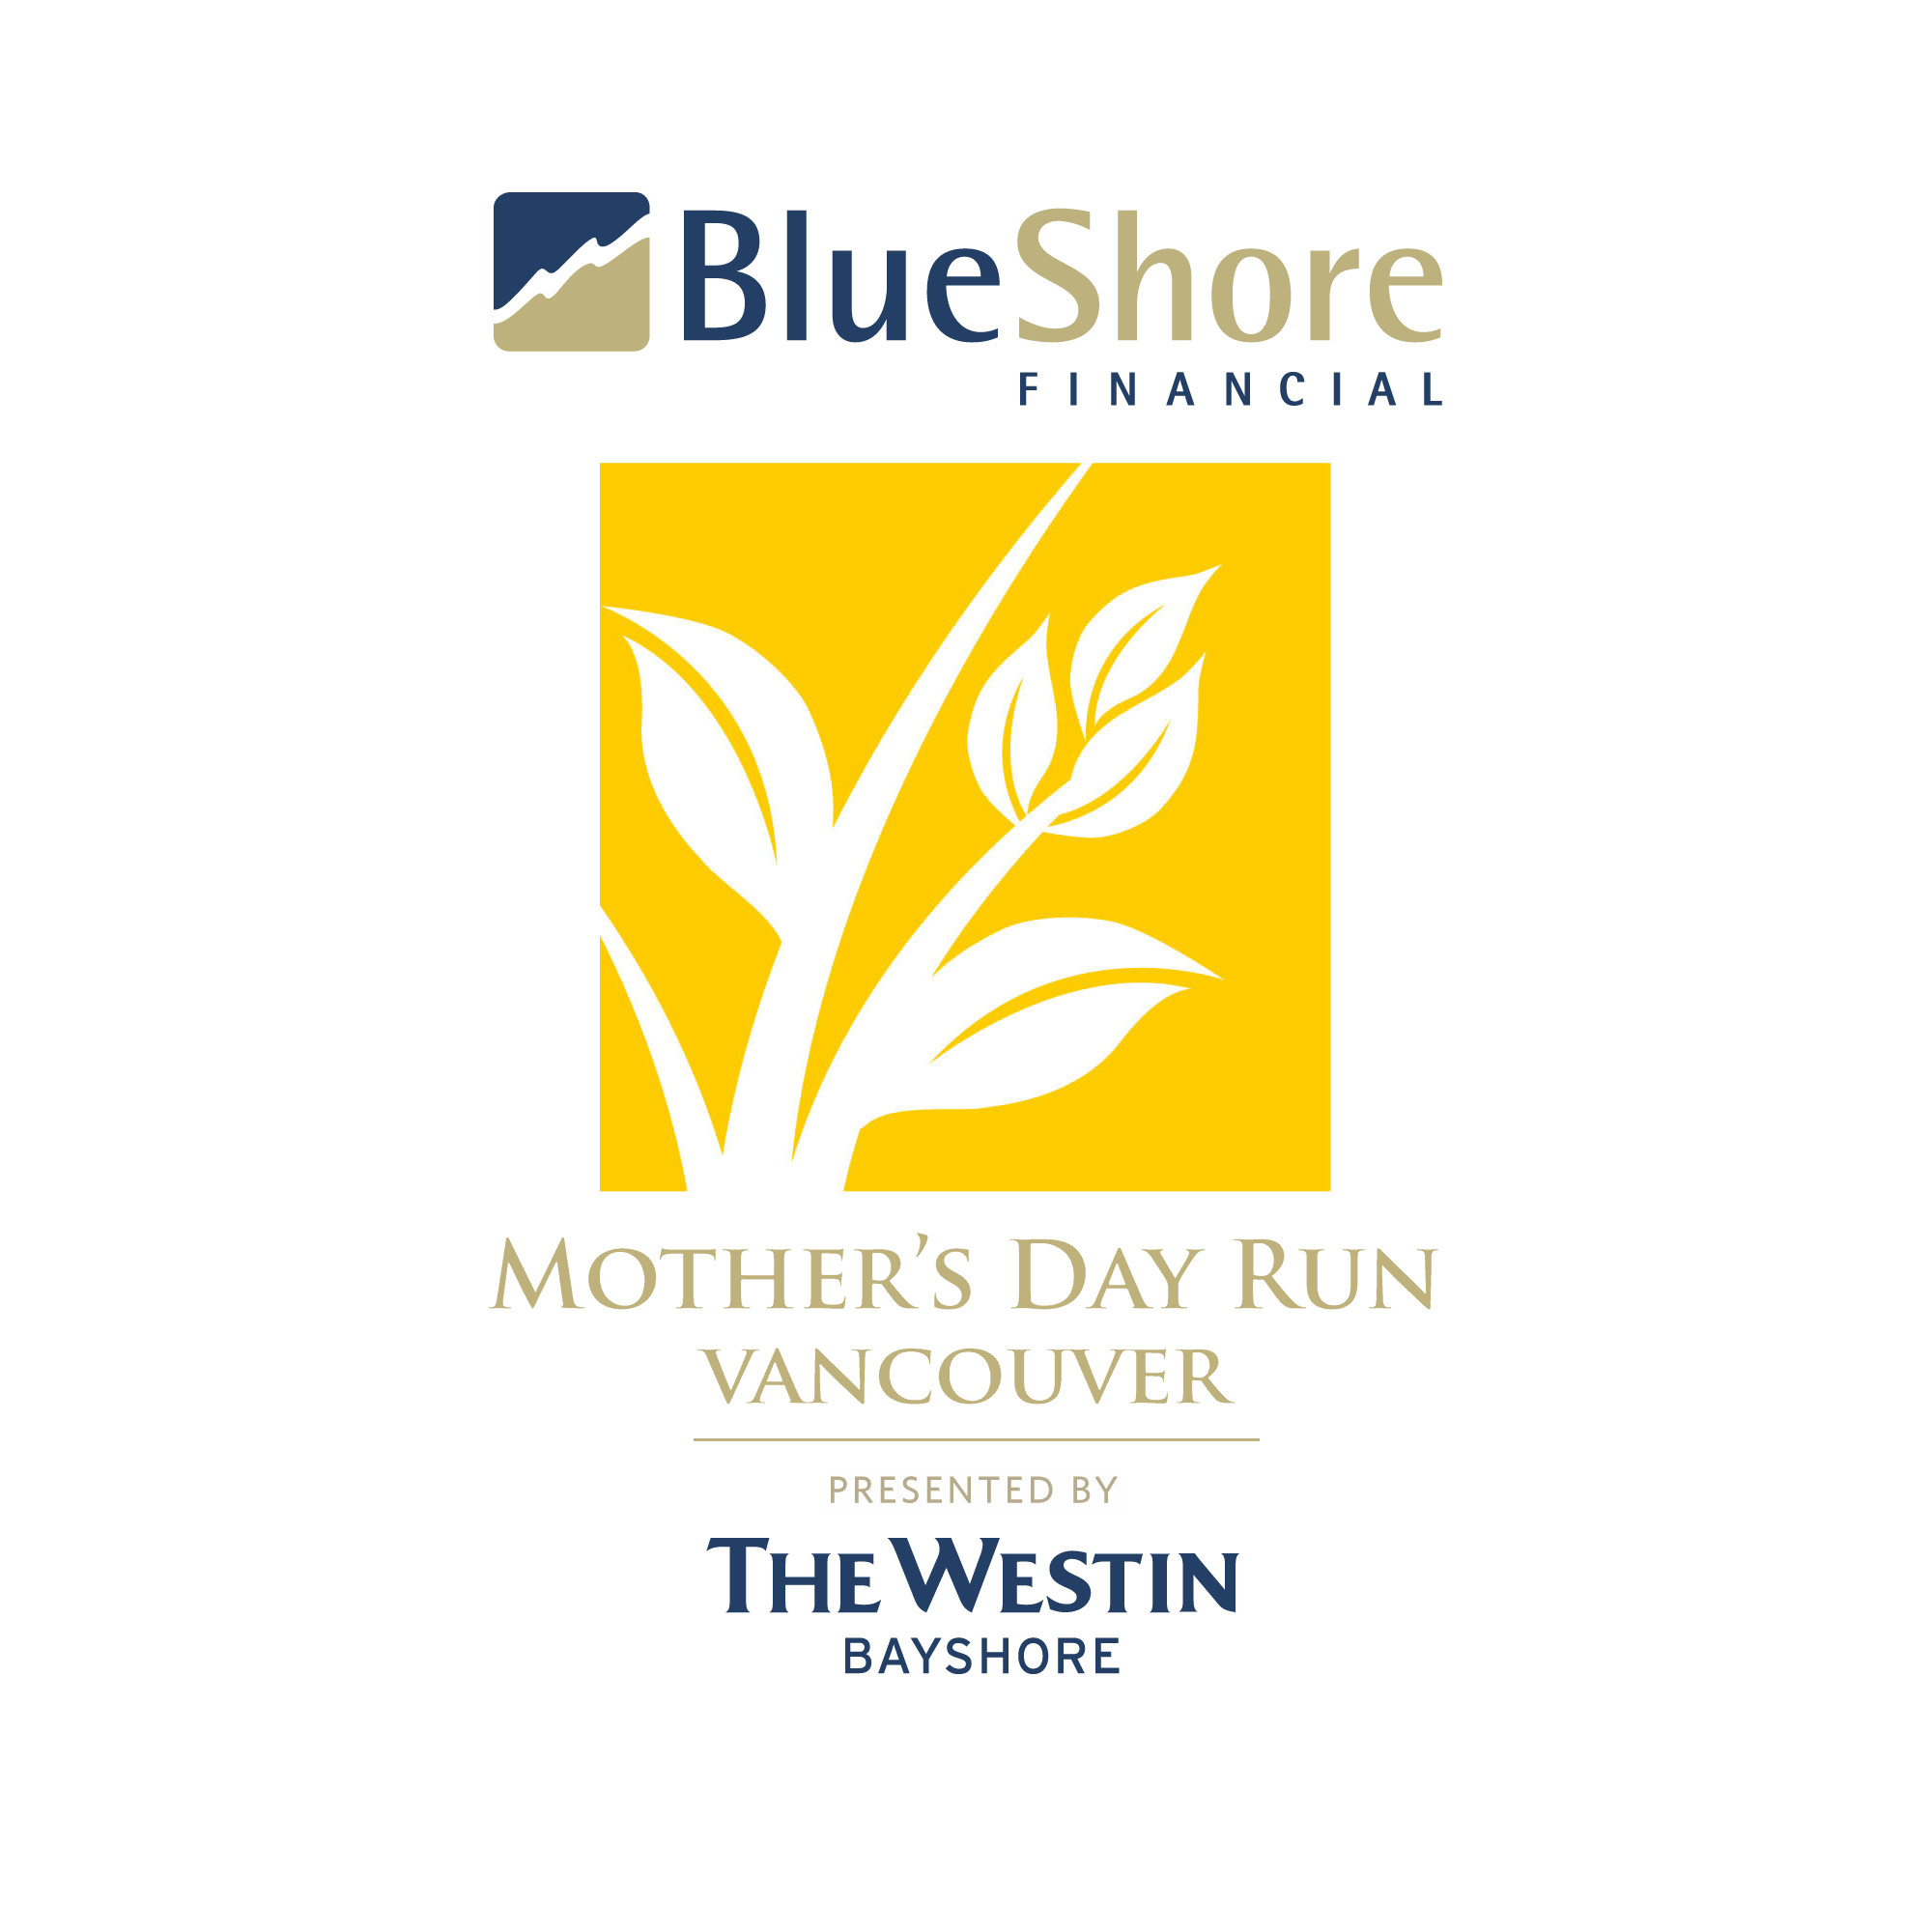 BlueShore Financial Mother's Day Run